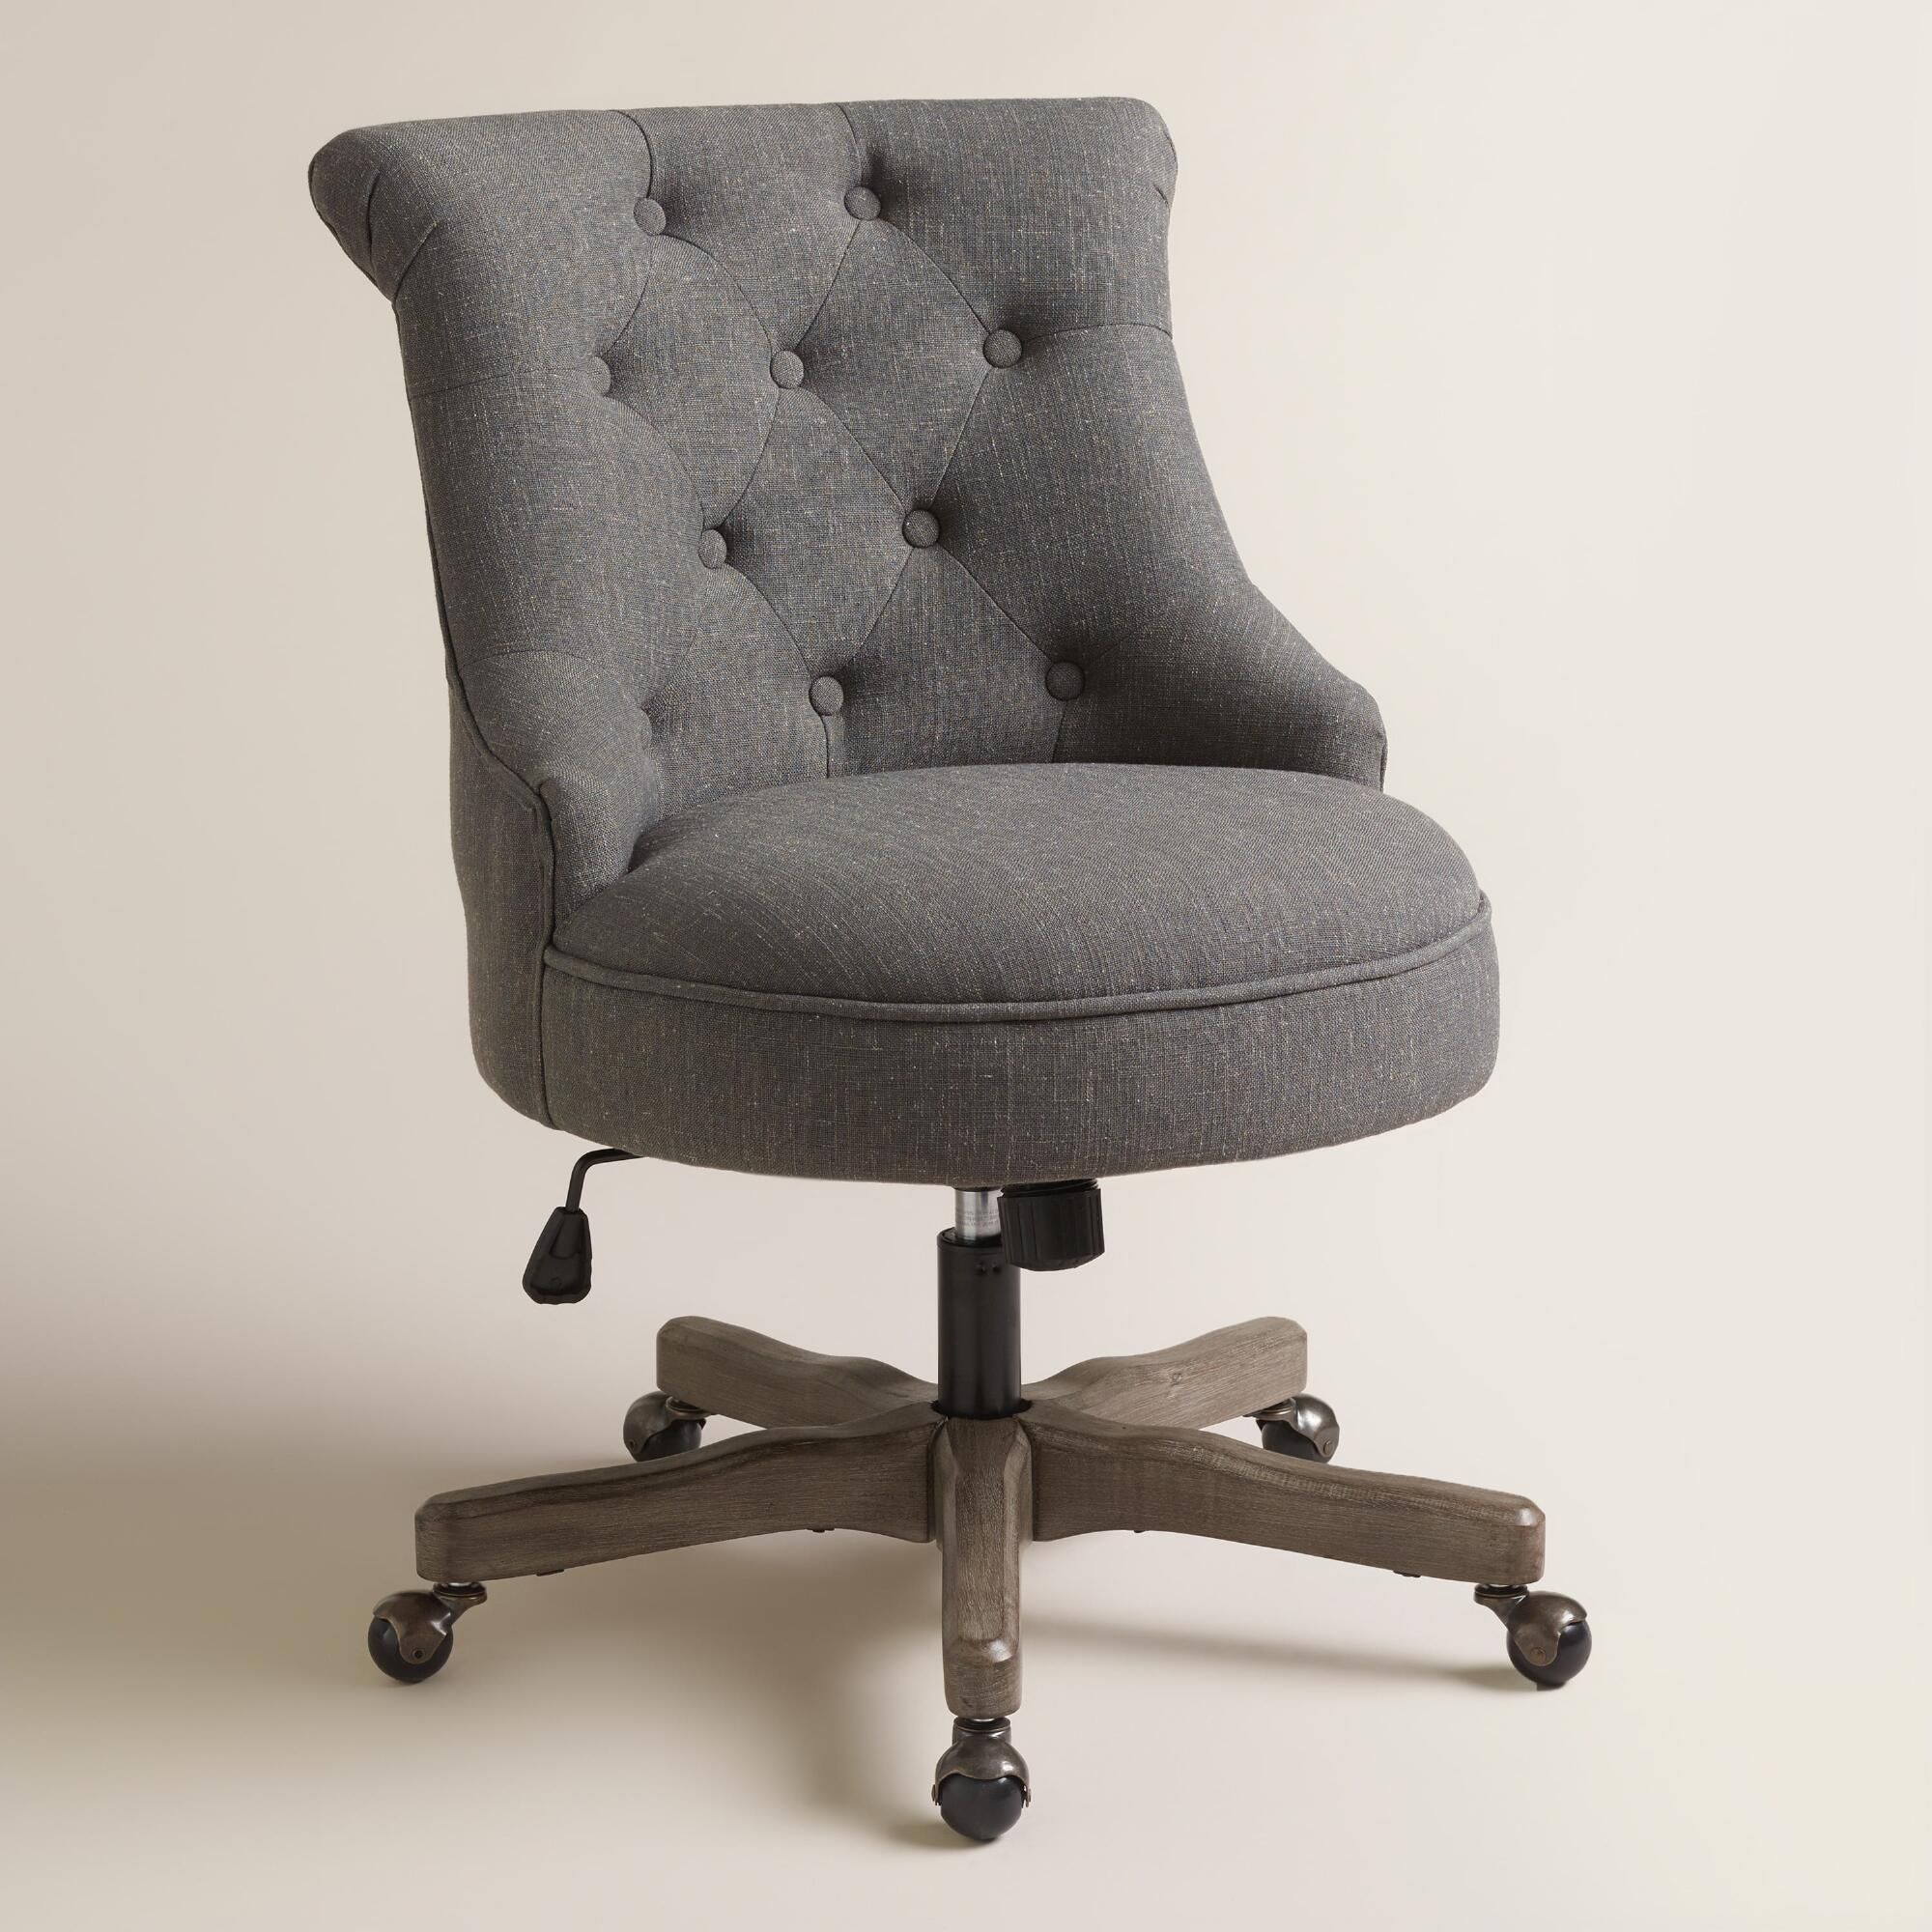 Charcoal Elsie Upholstered fice Chair